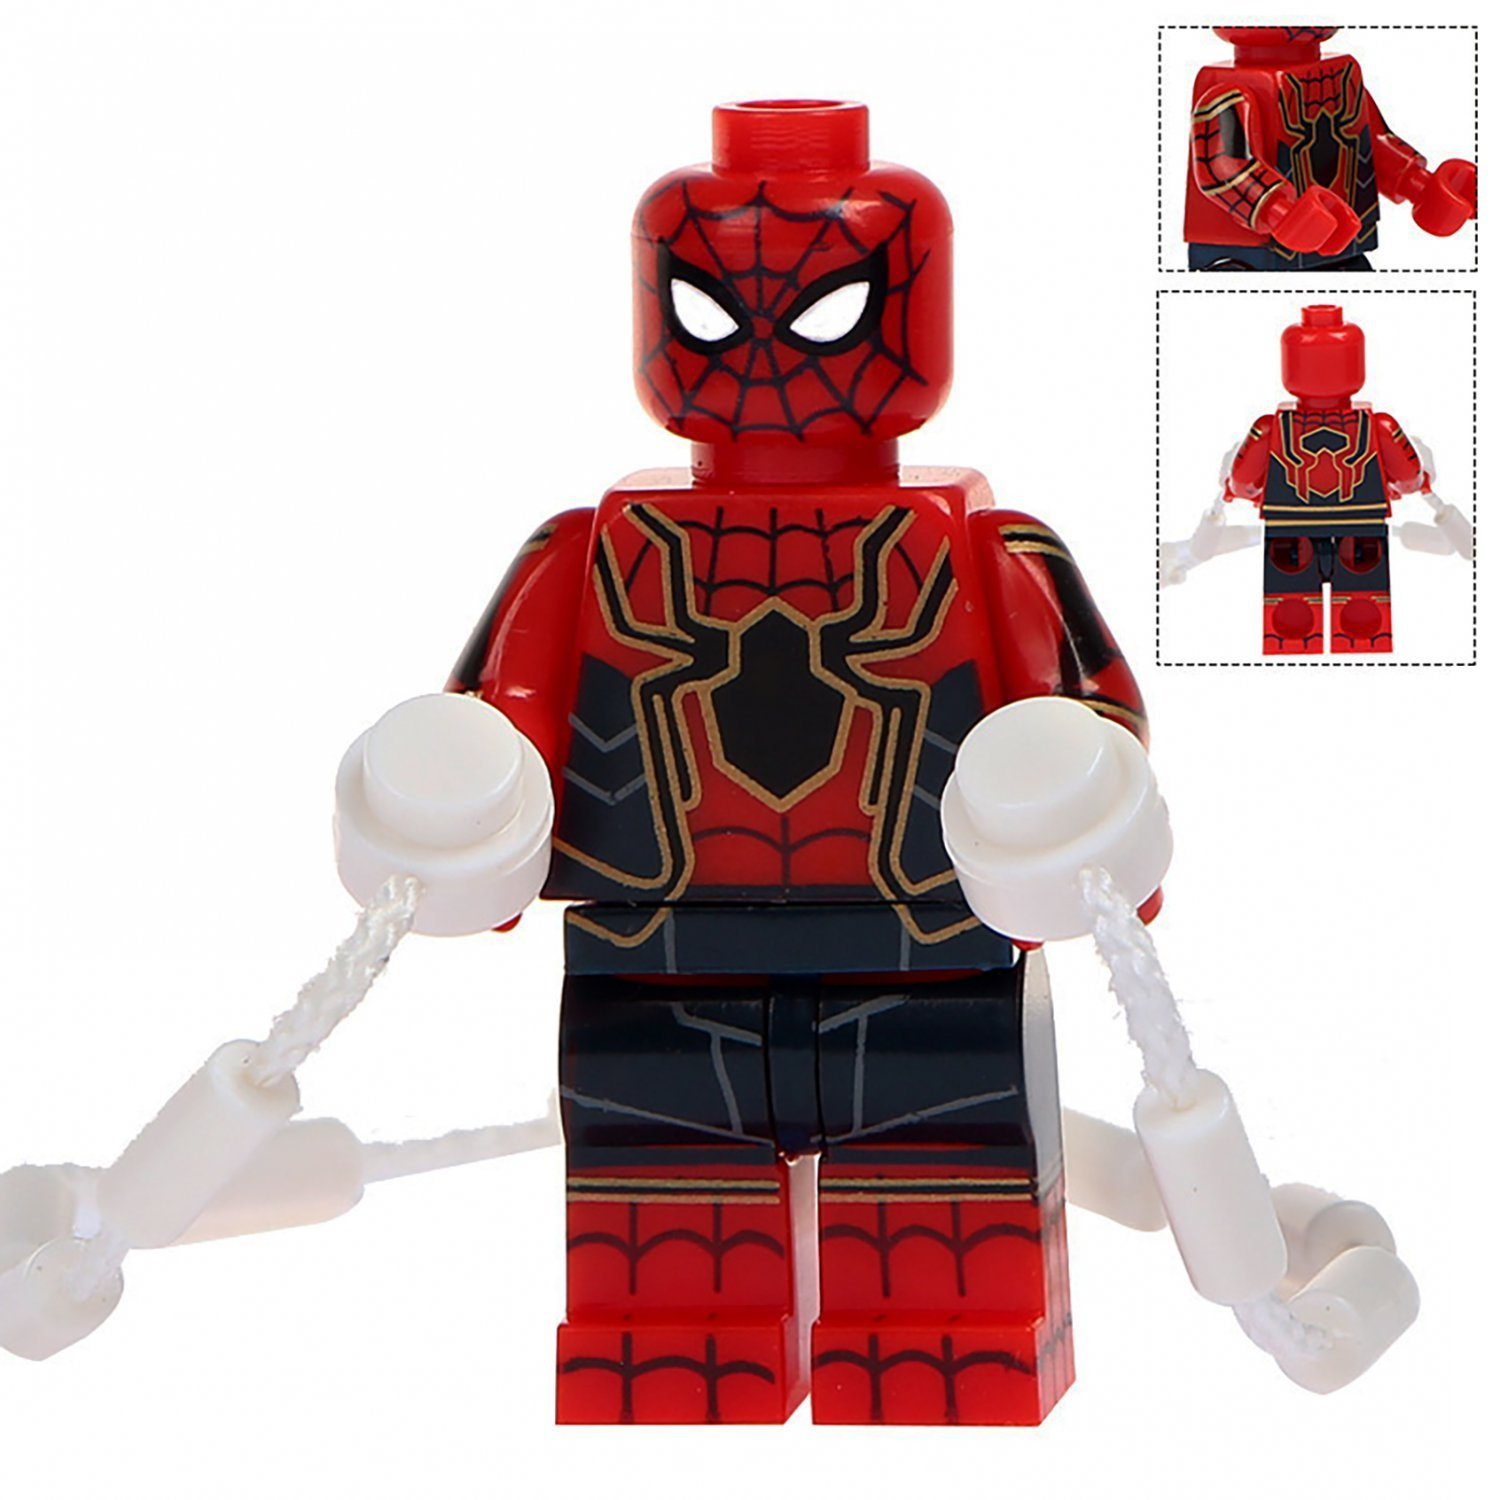 Minifigure SpiderMan Infinity War Marvel Super Heroes Lego compatible Building Blocks Toys